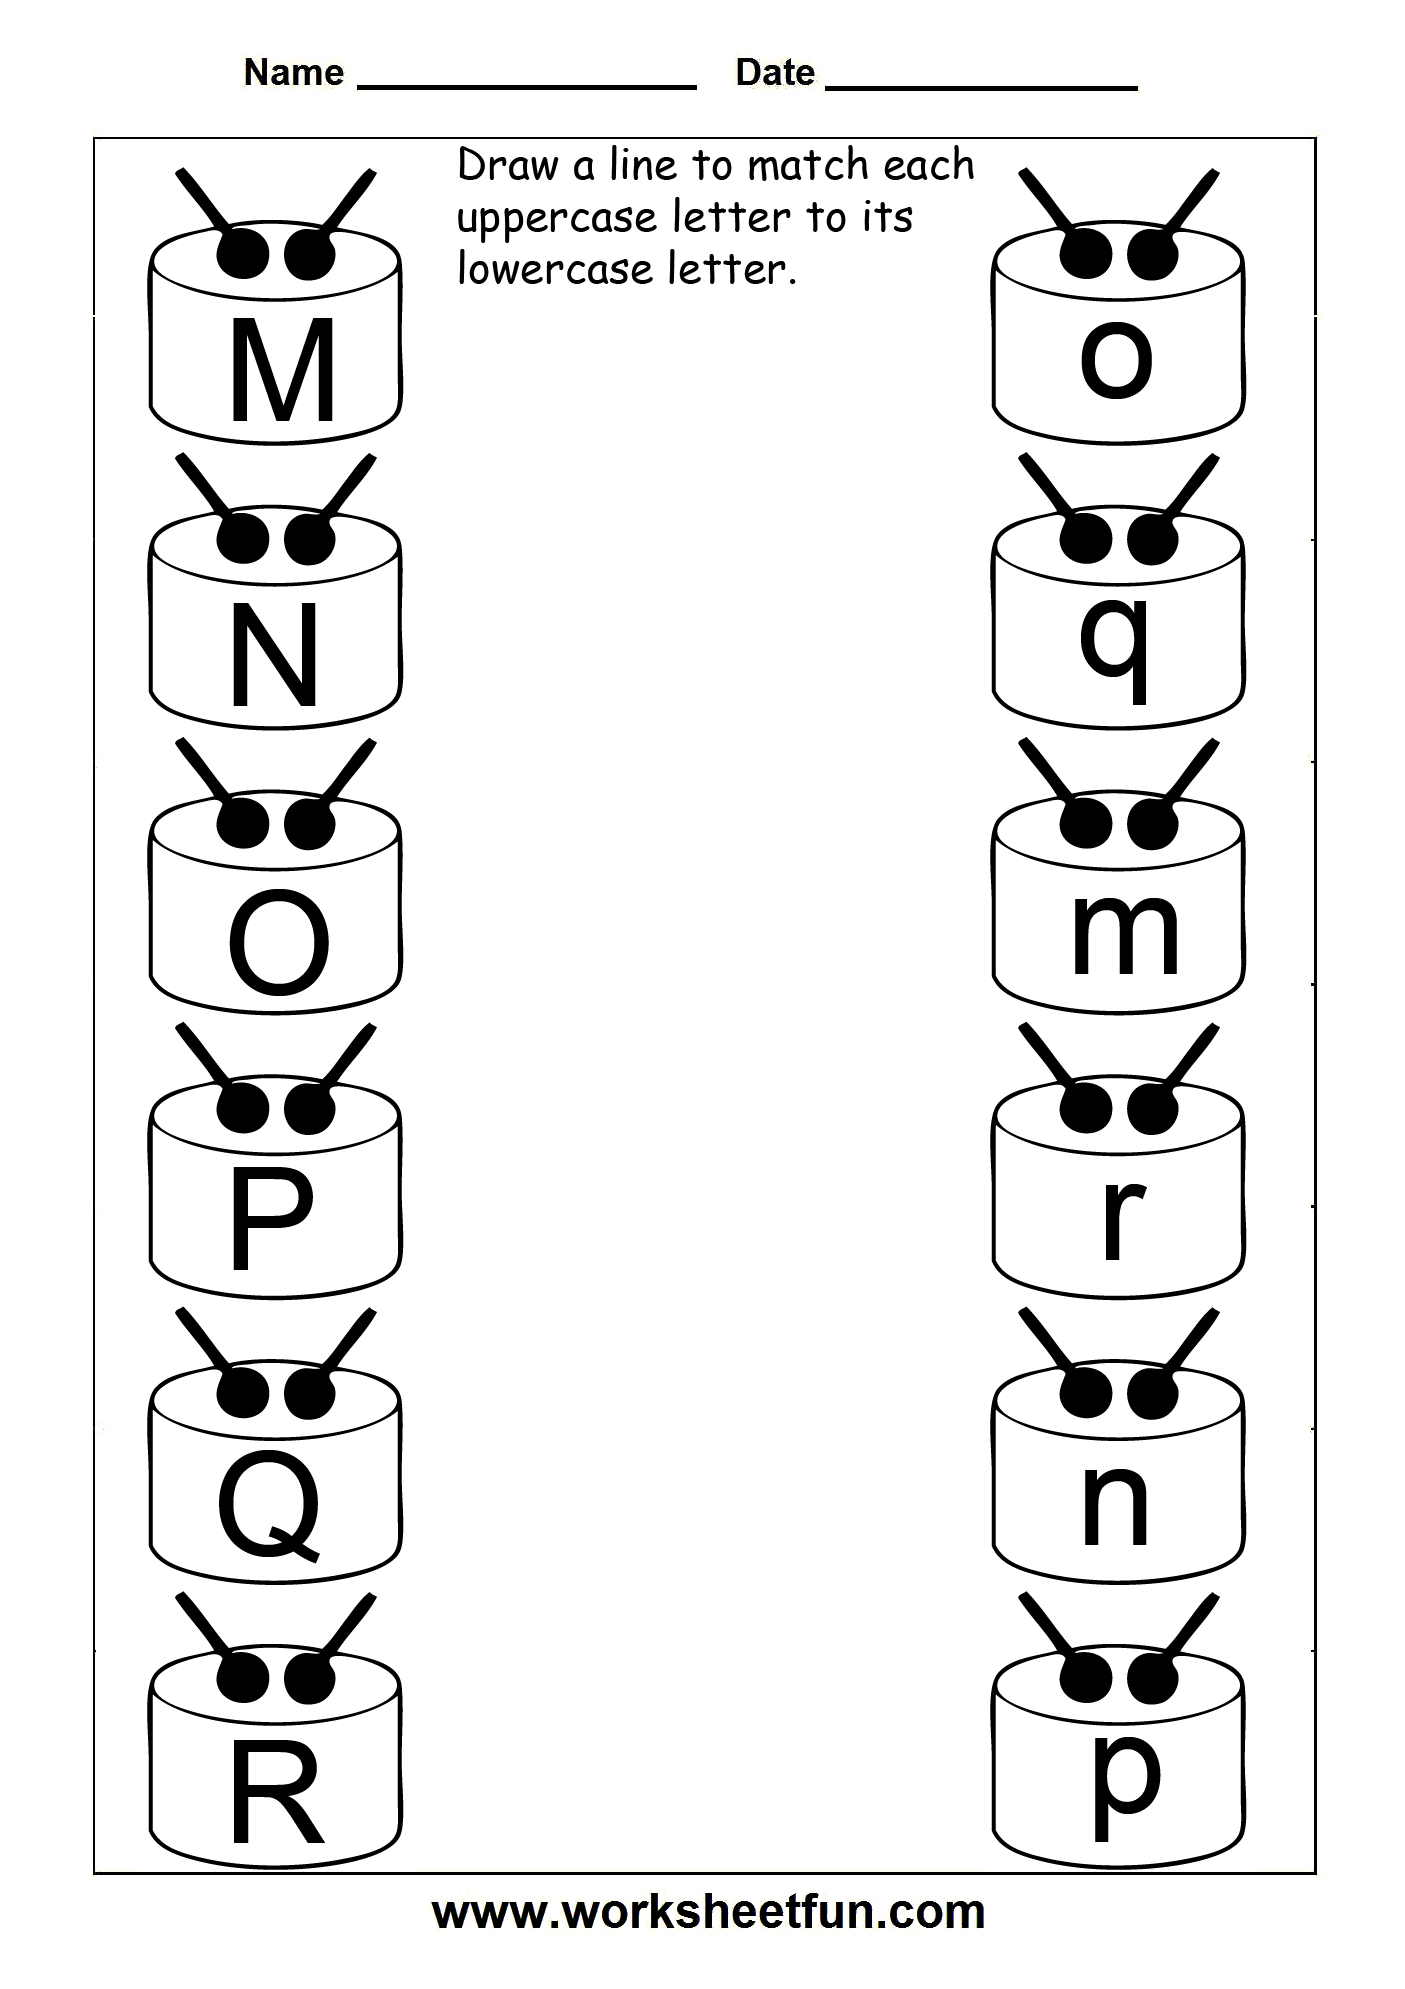 Match Uppercase And Lowercase Letters – 13 Worksheets / Free pertaining to Alphabet Matching Worksheets For Pre-K